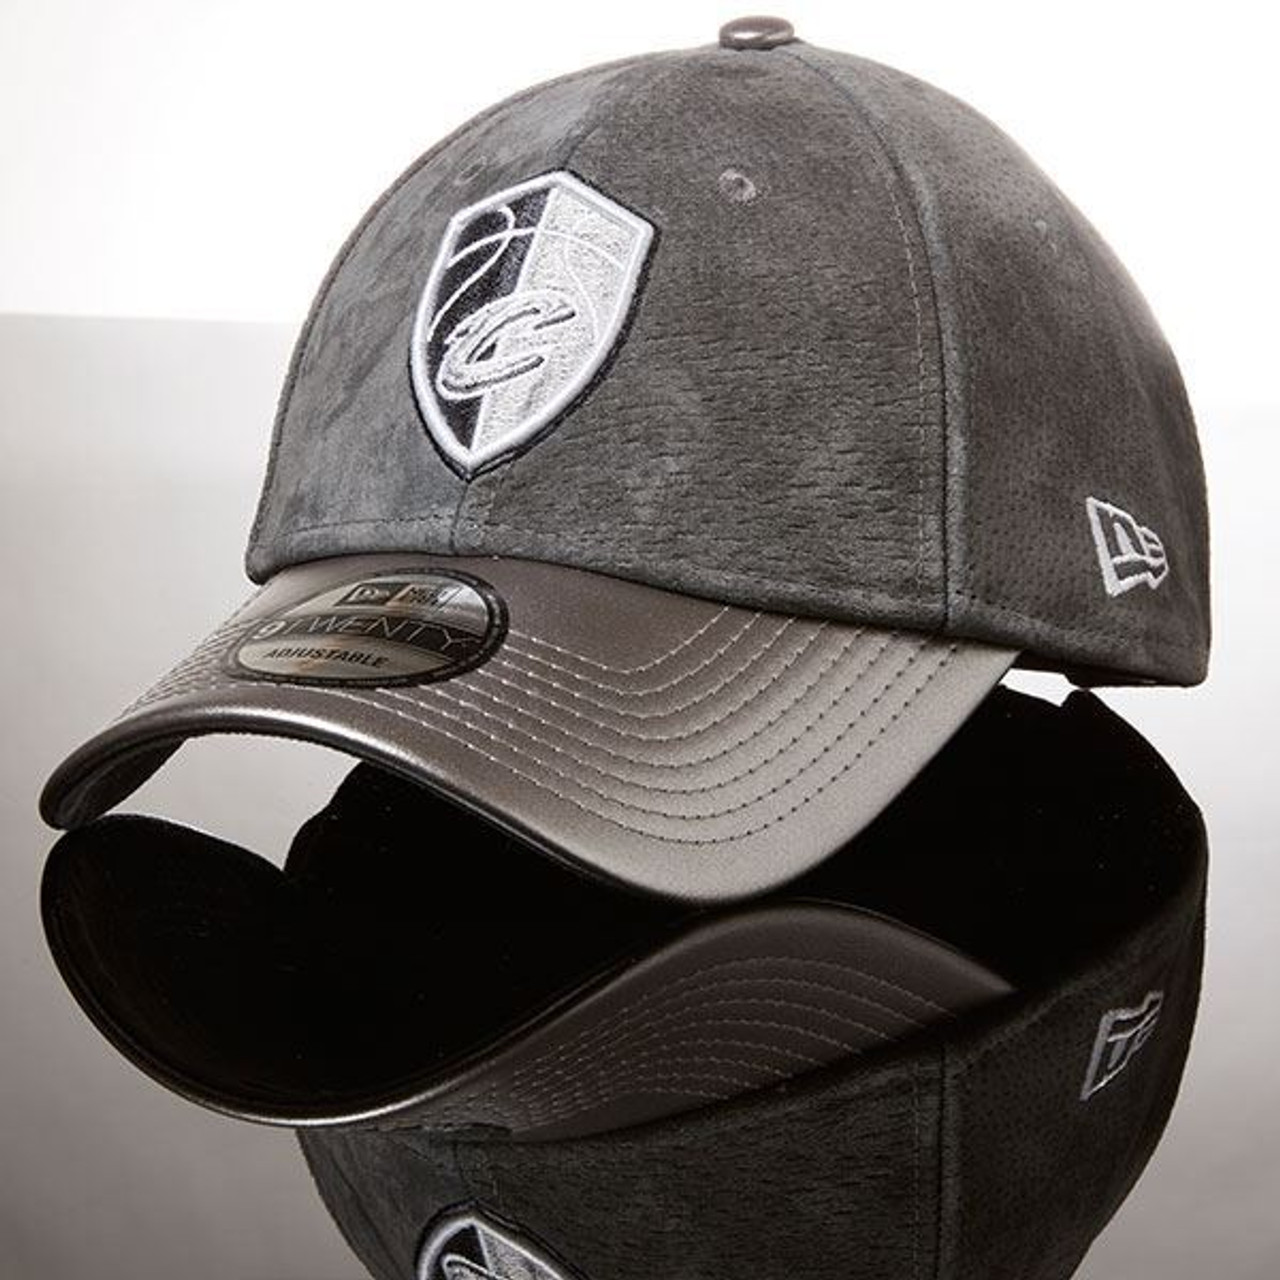 Sixteen Series Suede   Leather City Edition Adjustable Cap with Case -  Cleveland Cavaliers 11efde39123b